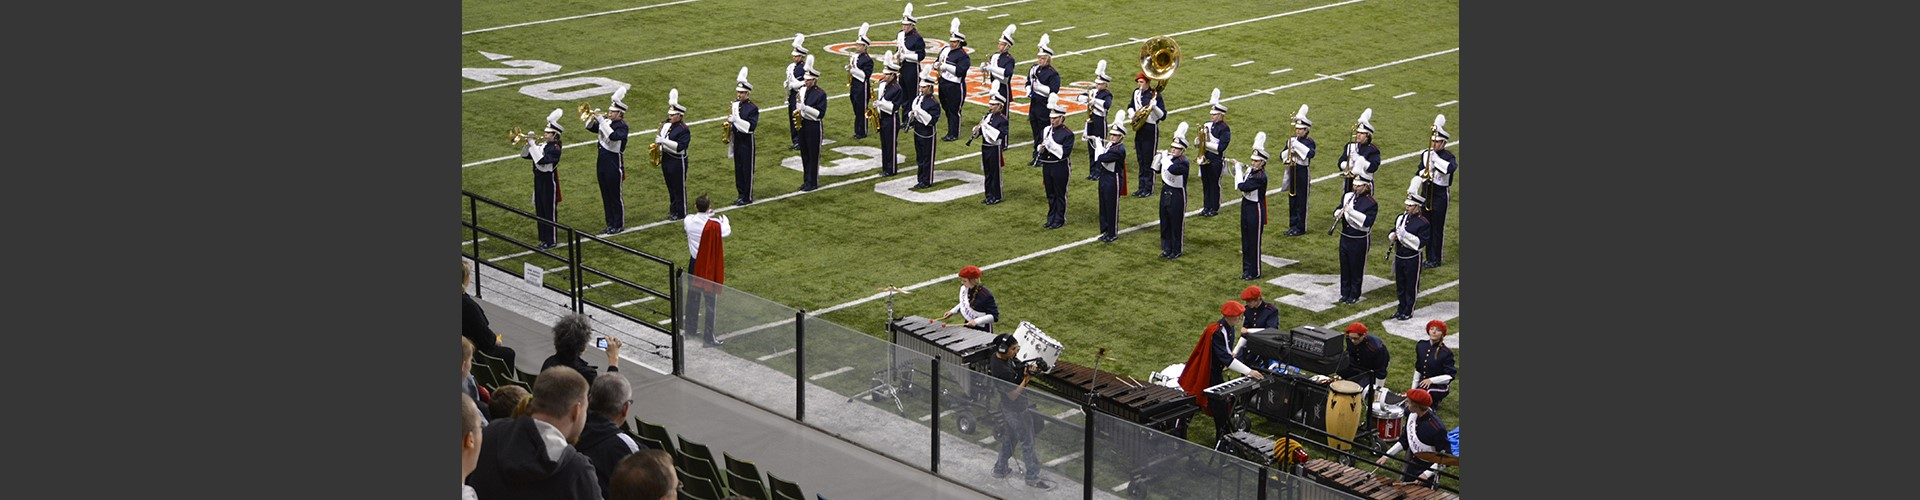 pocatello high school band formations on football field